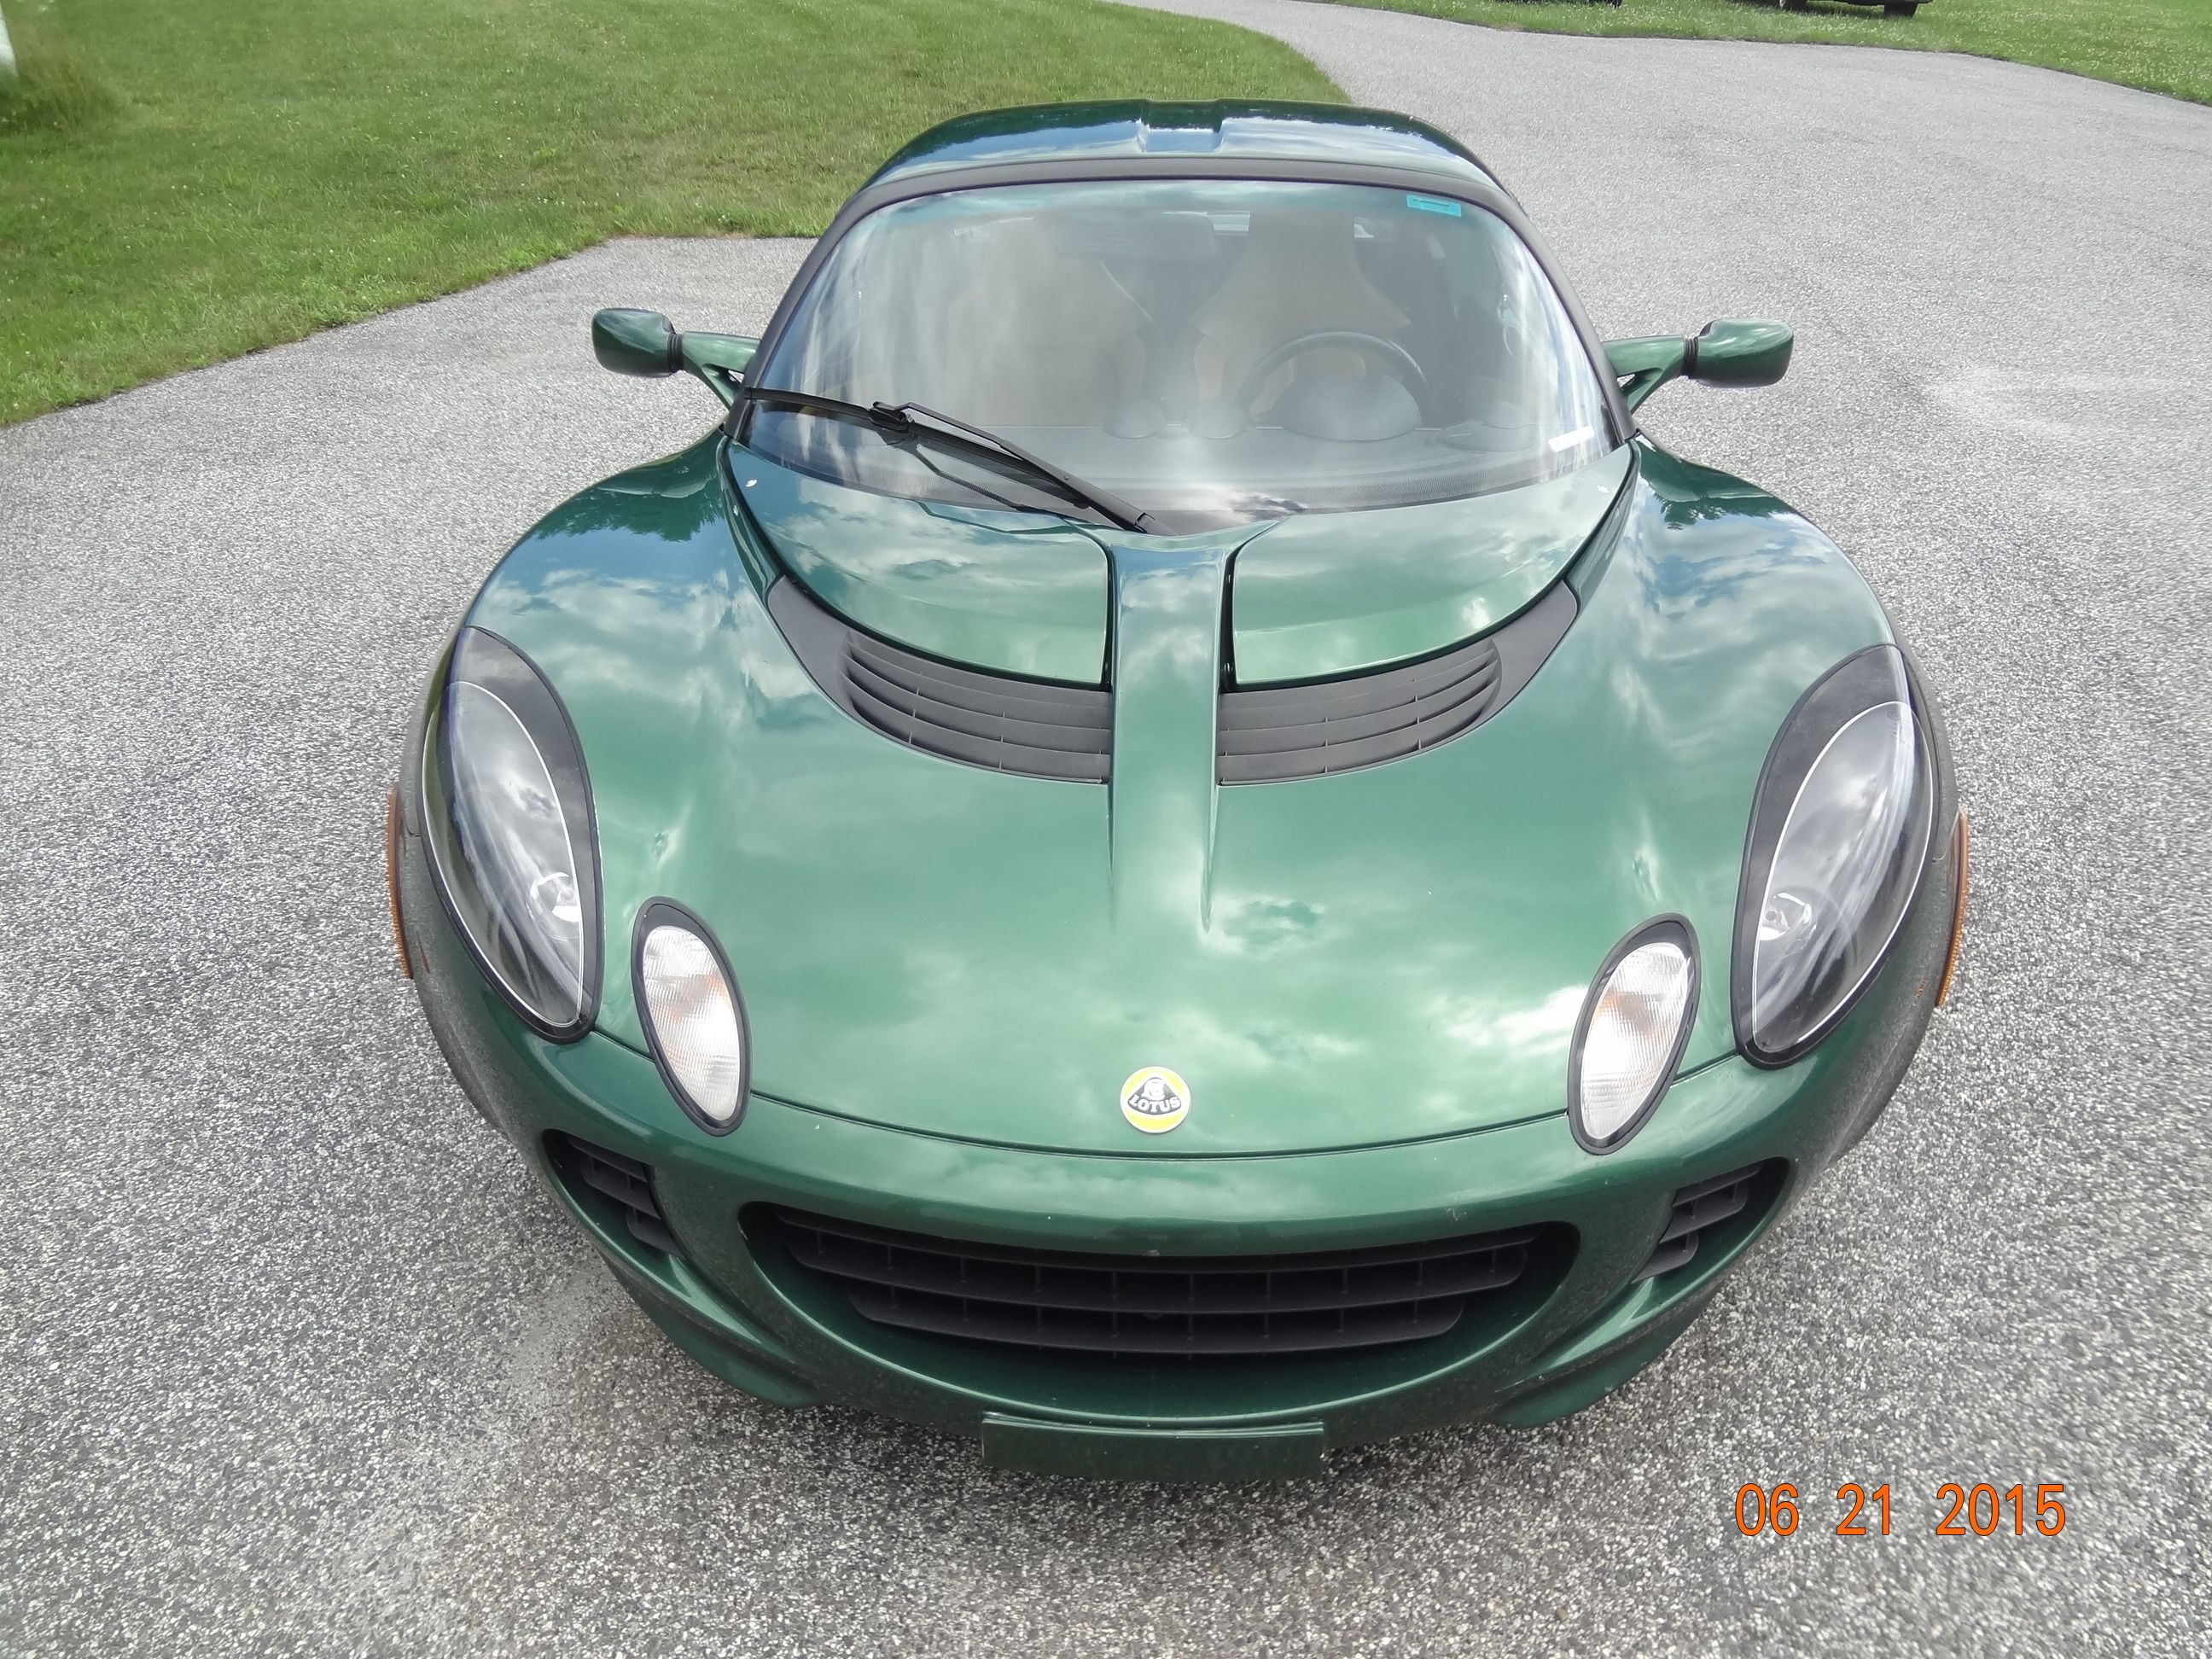 2005 Lotus Elise For Sale 01 Misc 2005 lotus elise